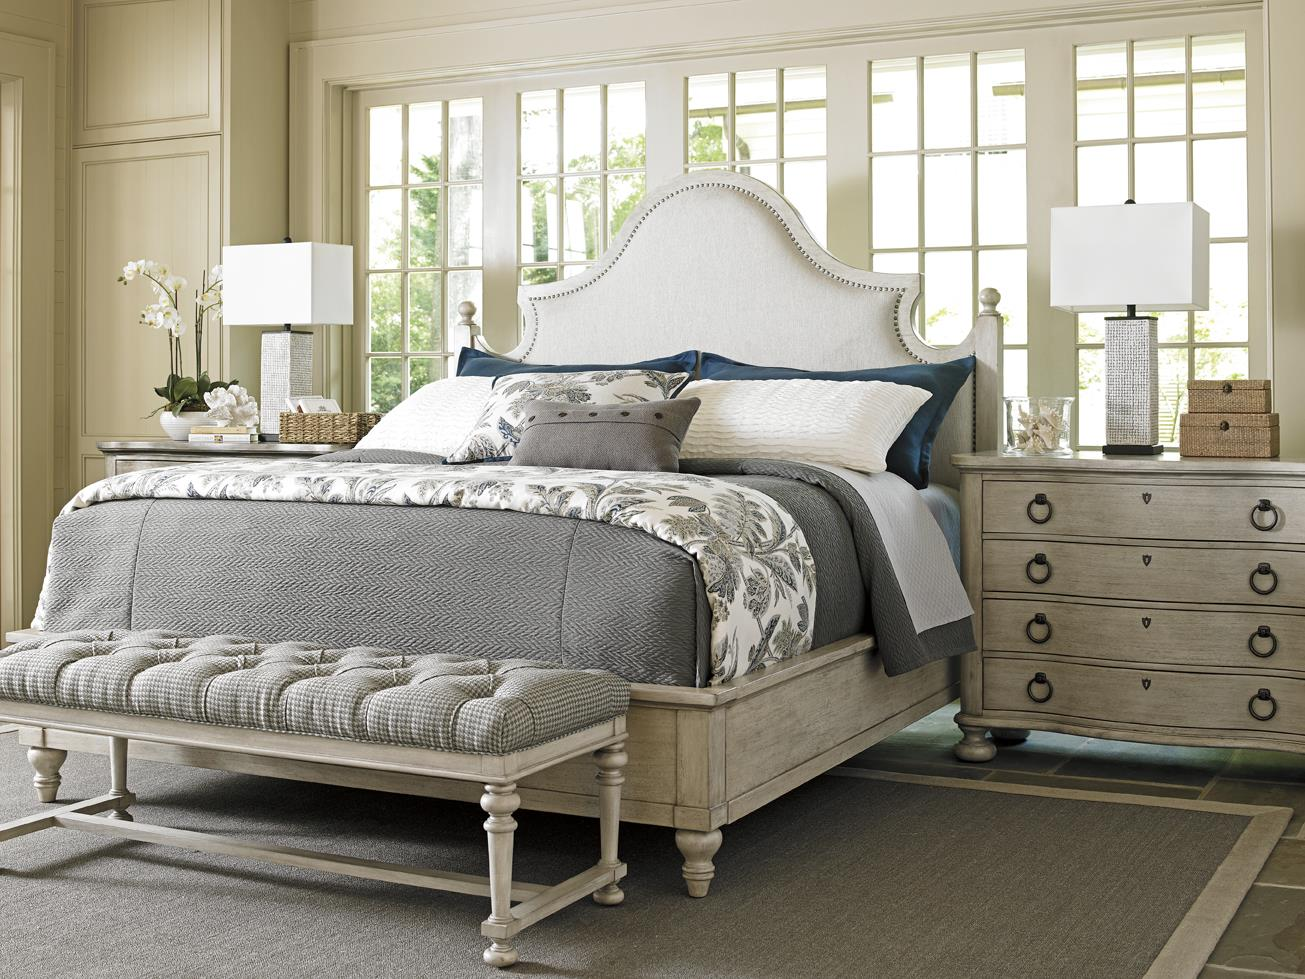 Oyster Bay King Bedroom Group by Lexington at Baer's Furniture